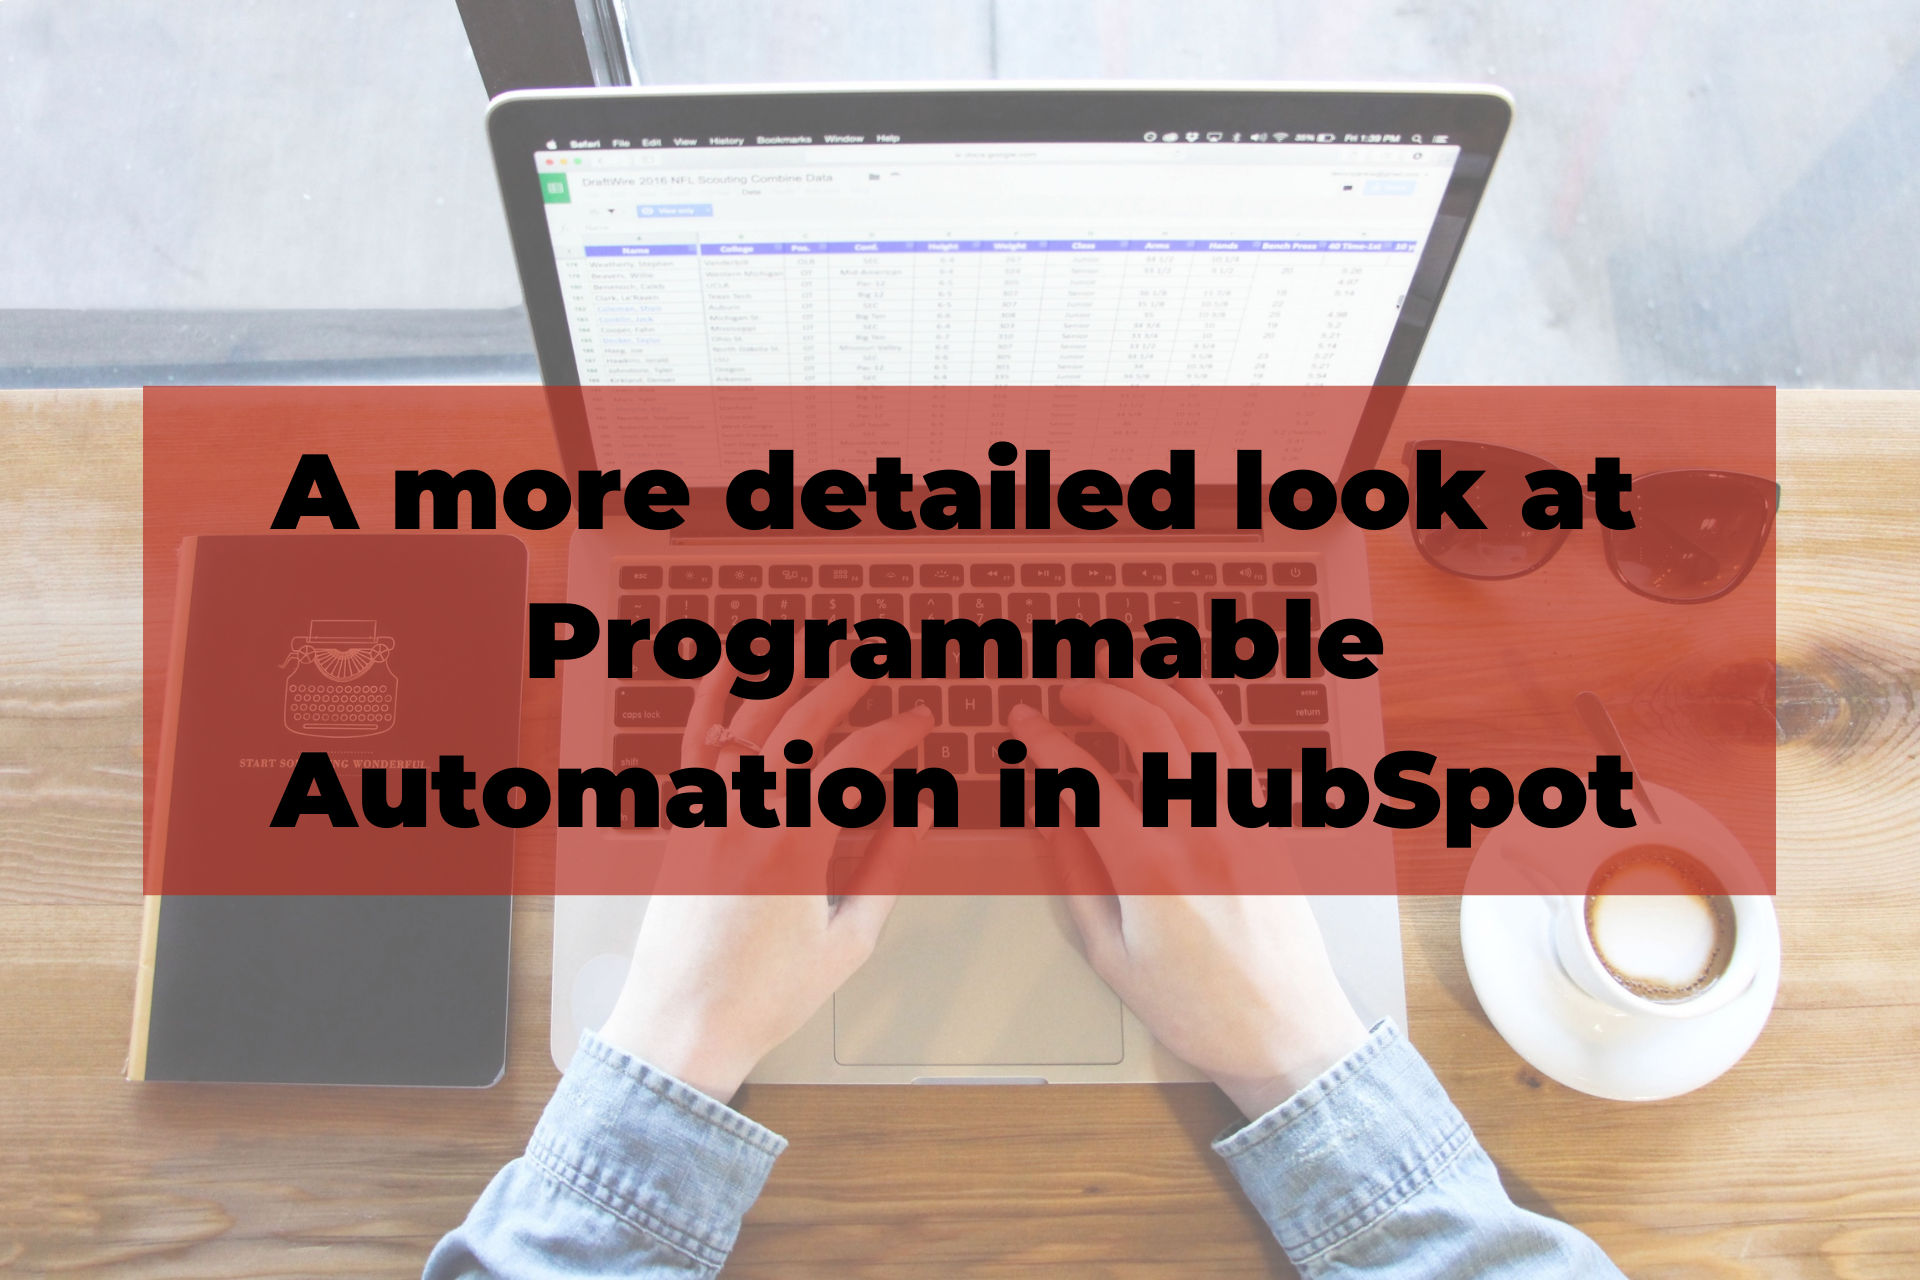 A more detailed look at Programmable Automation in HubSpot